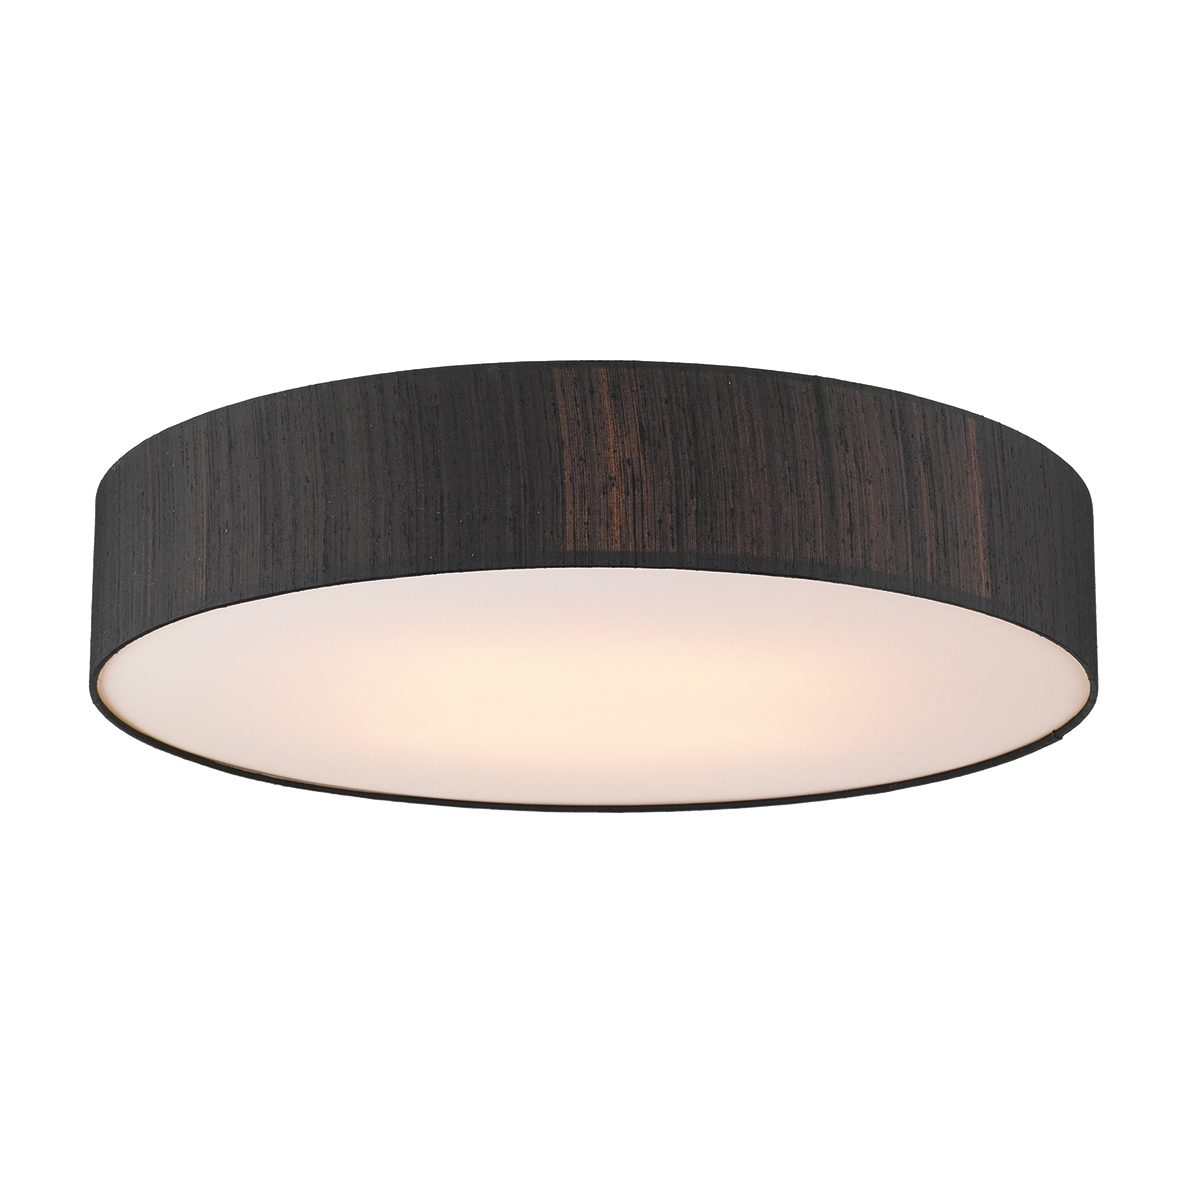 Paolo 80cm 4 Light Ceiling Flush